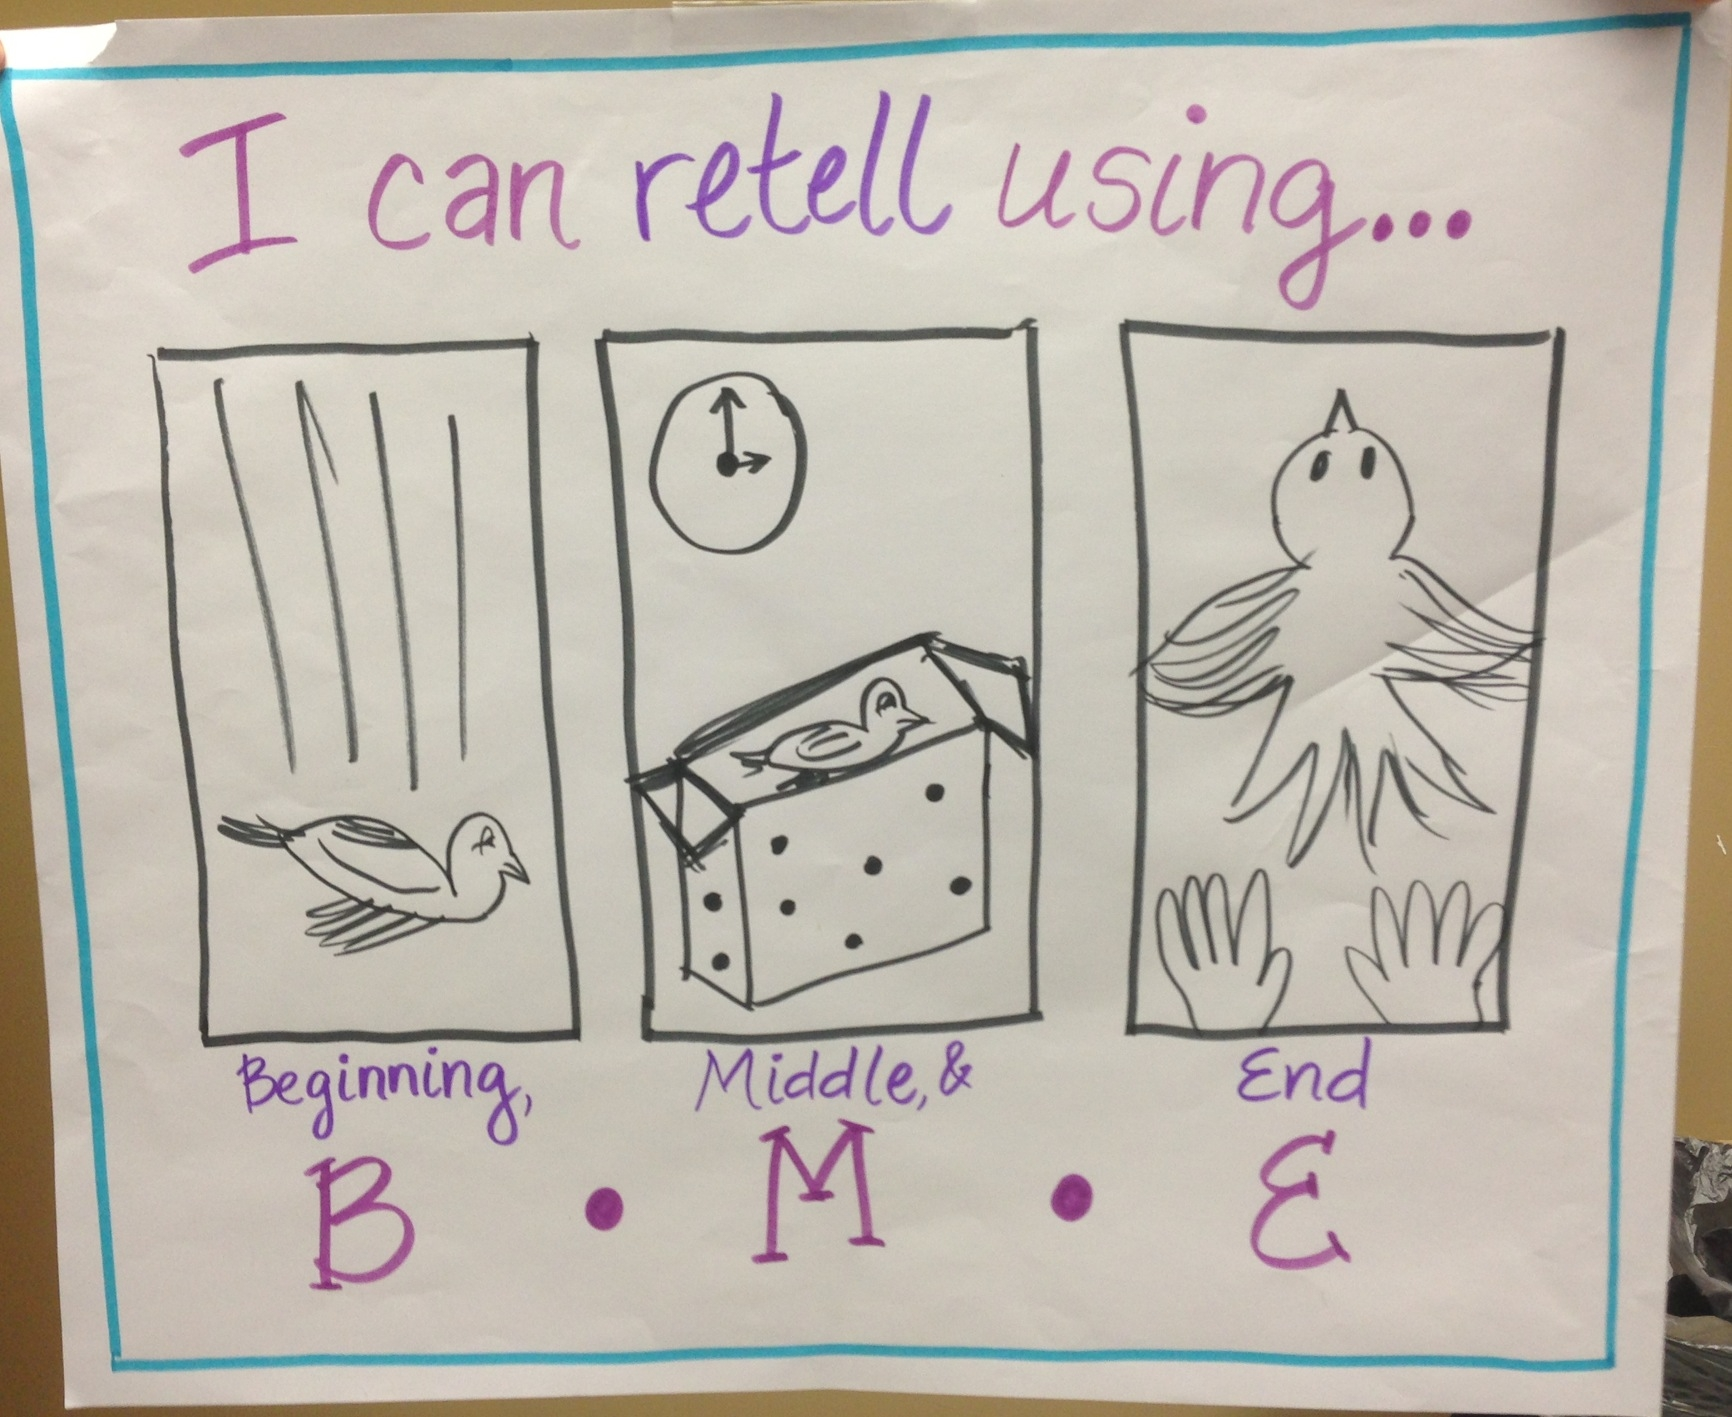 Using A Readera S Notebook To Retell Stories In Sequence